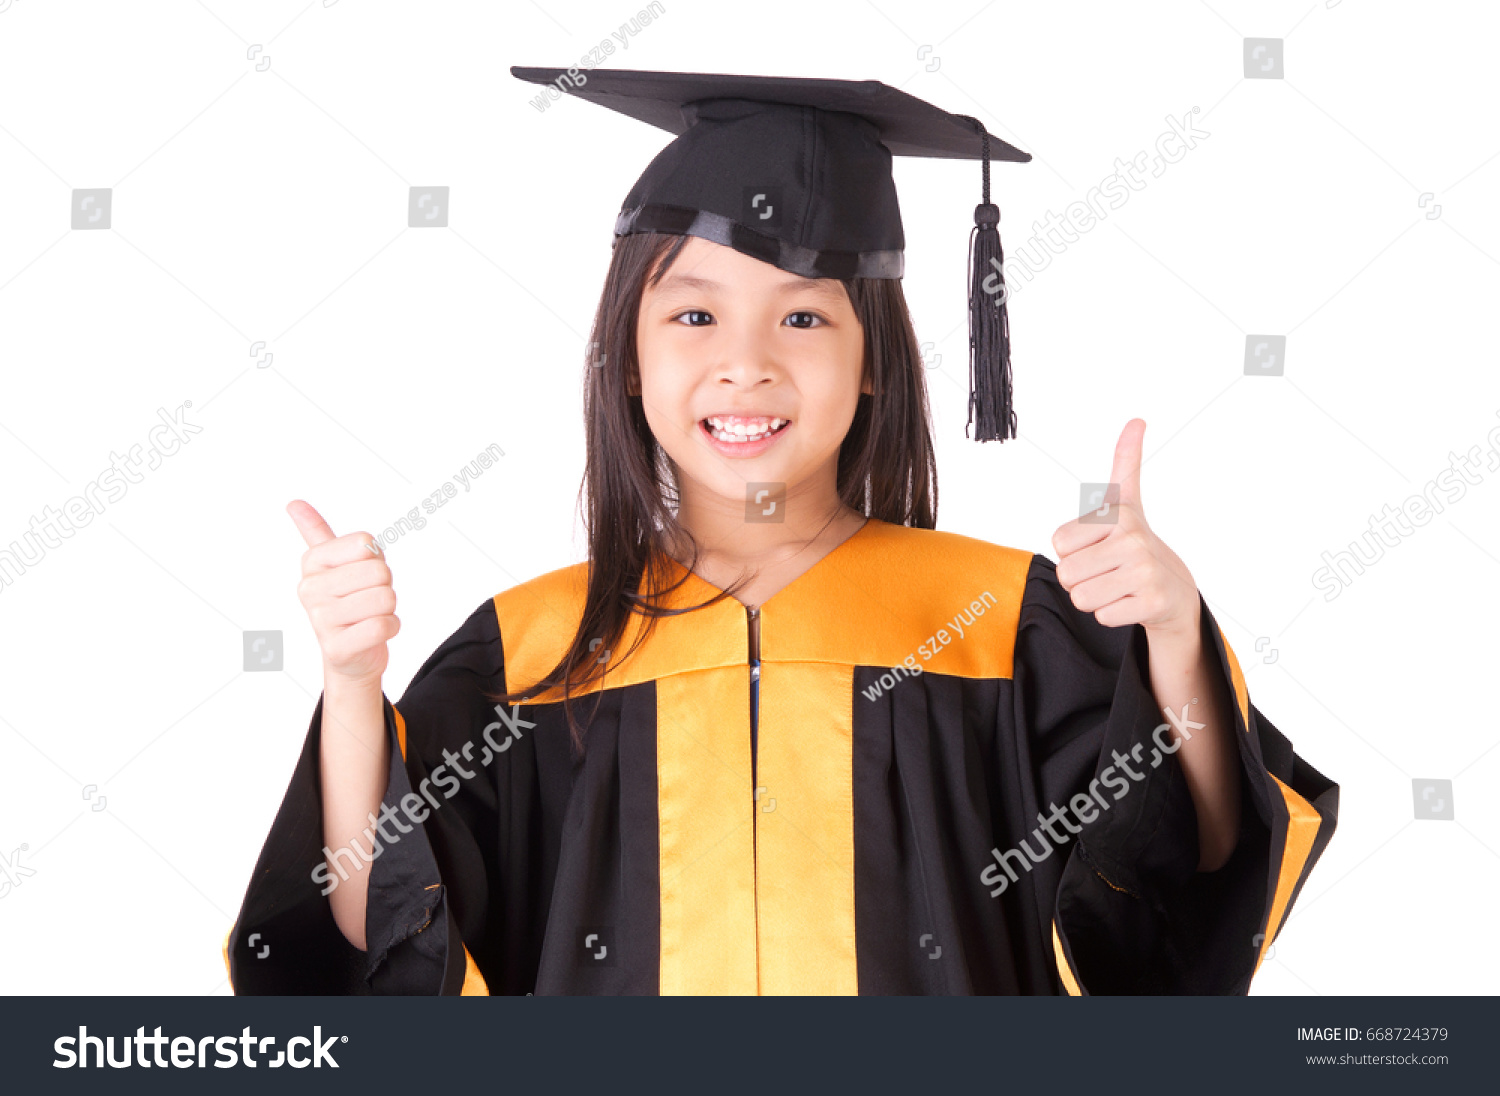 Asian Child Graduation Gown Mortarboard On Stock Photo (Royalty Free ...